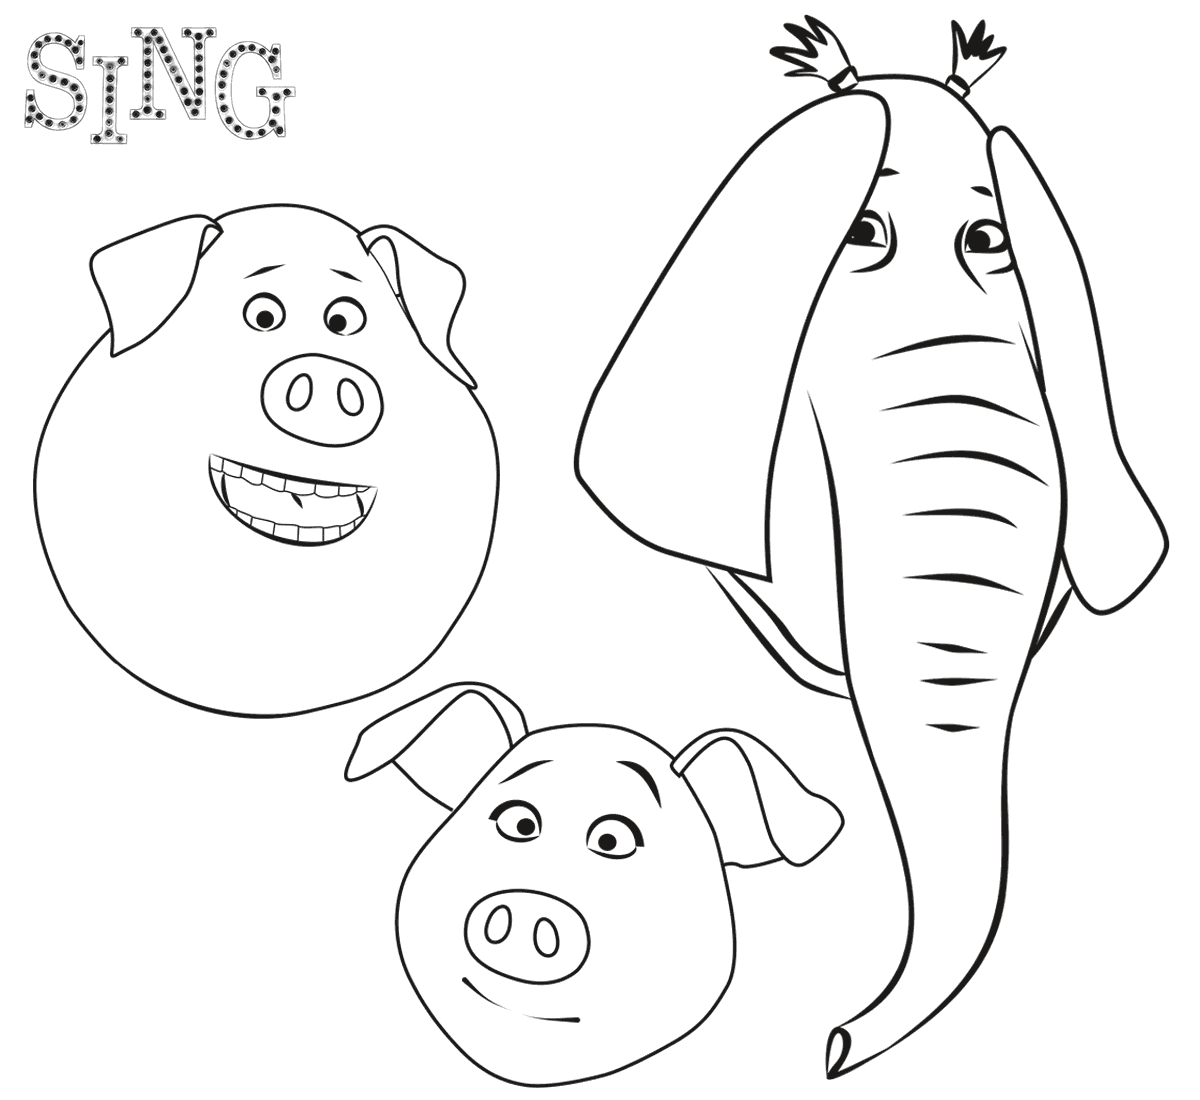 free colouring pages sing sing coloring pages best coloring pages for kids free pages sing colouring 1 1